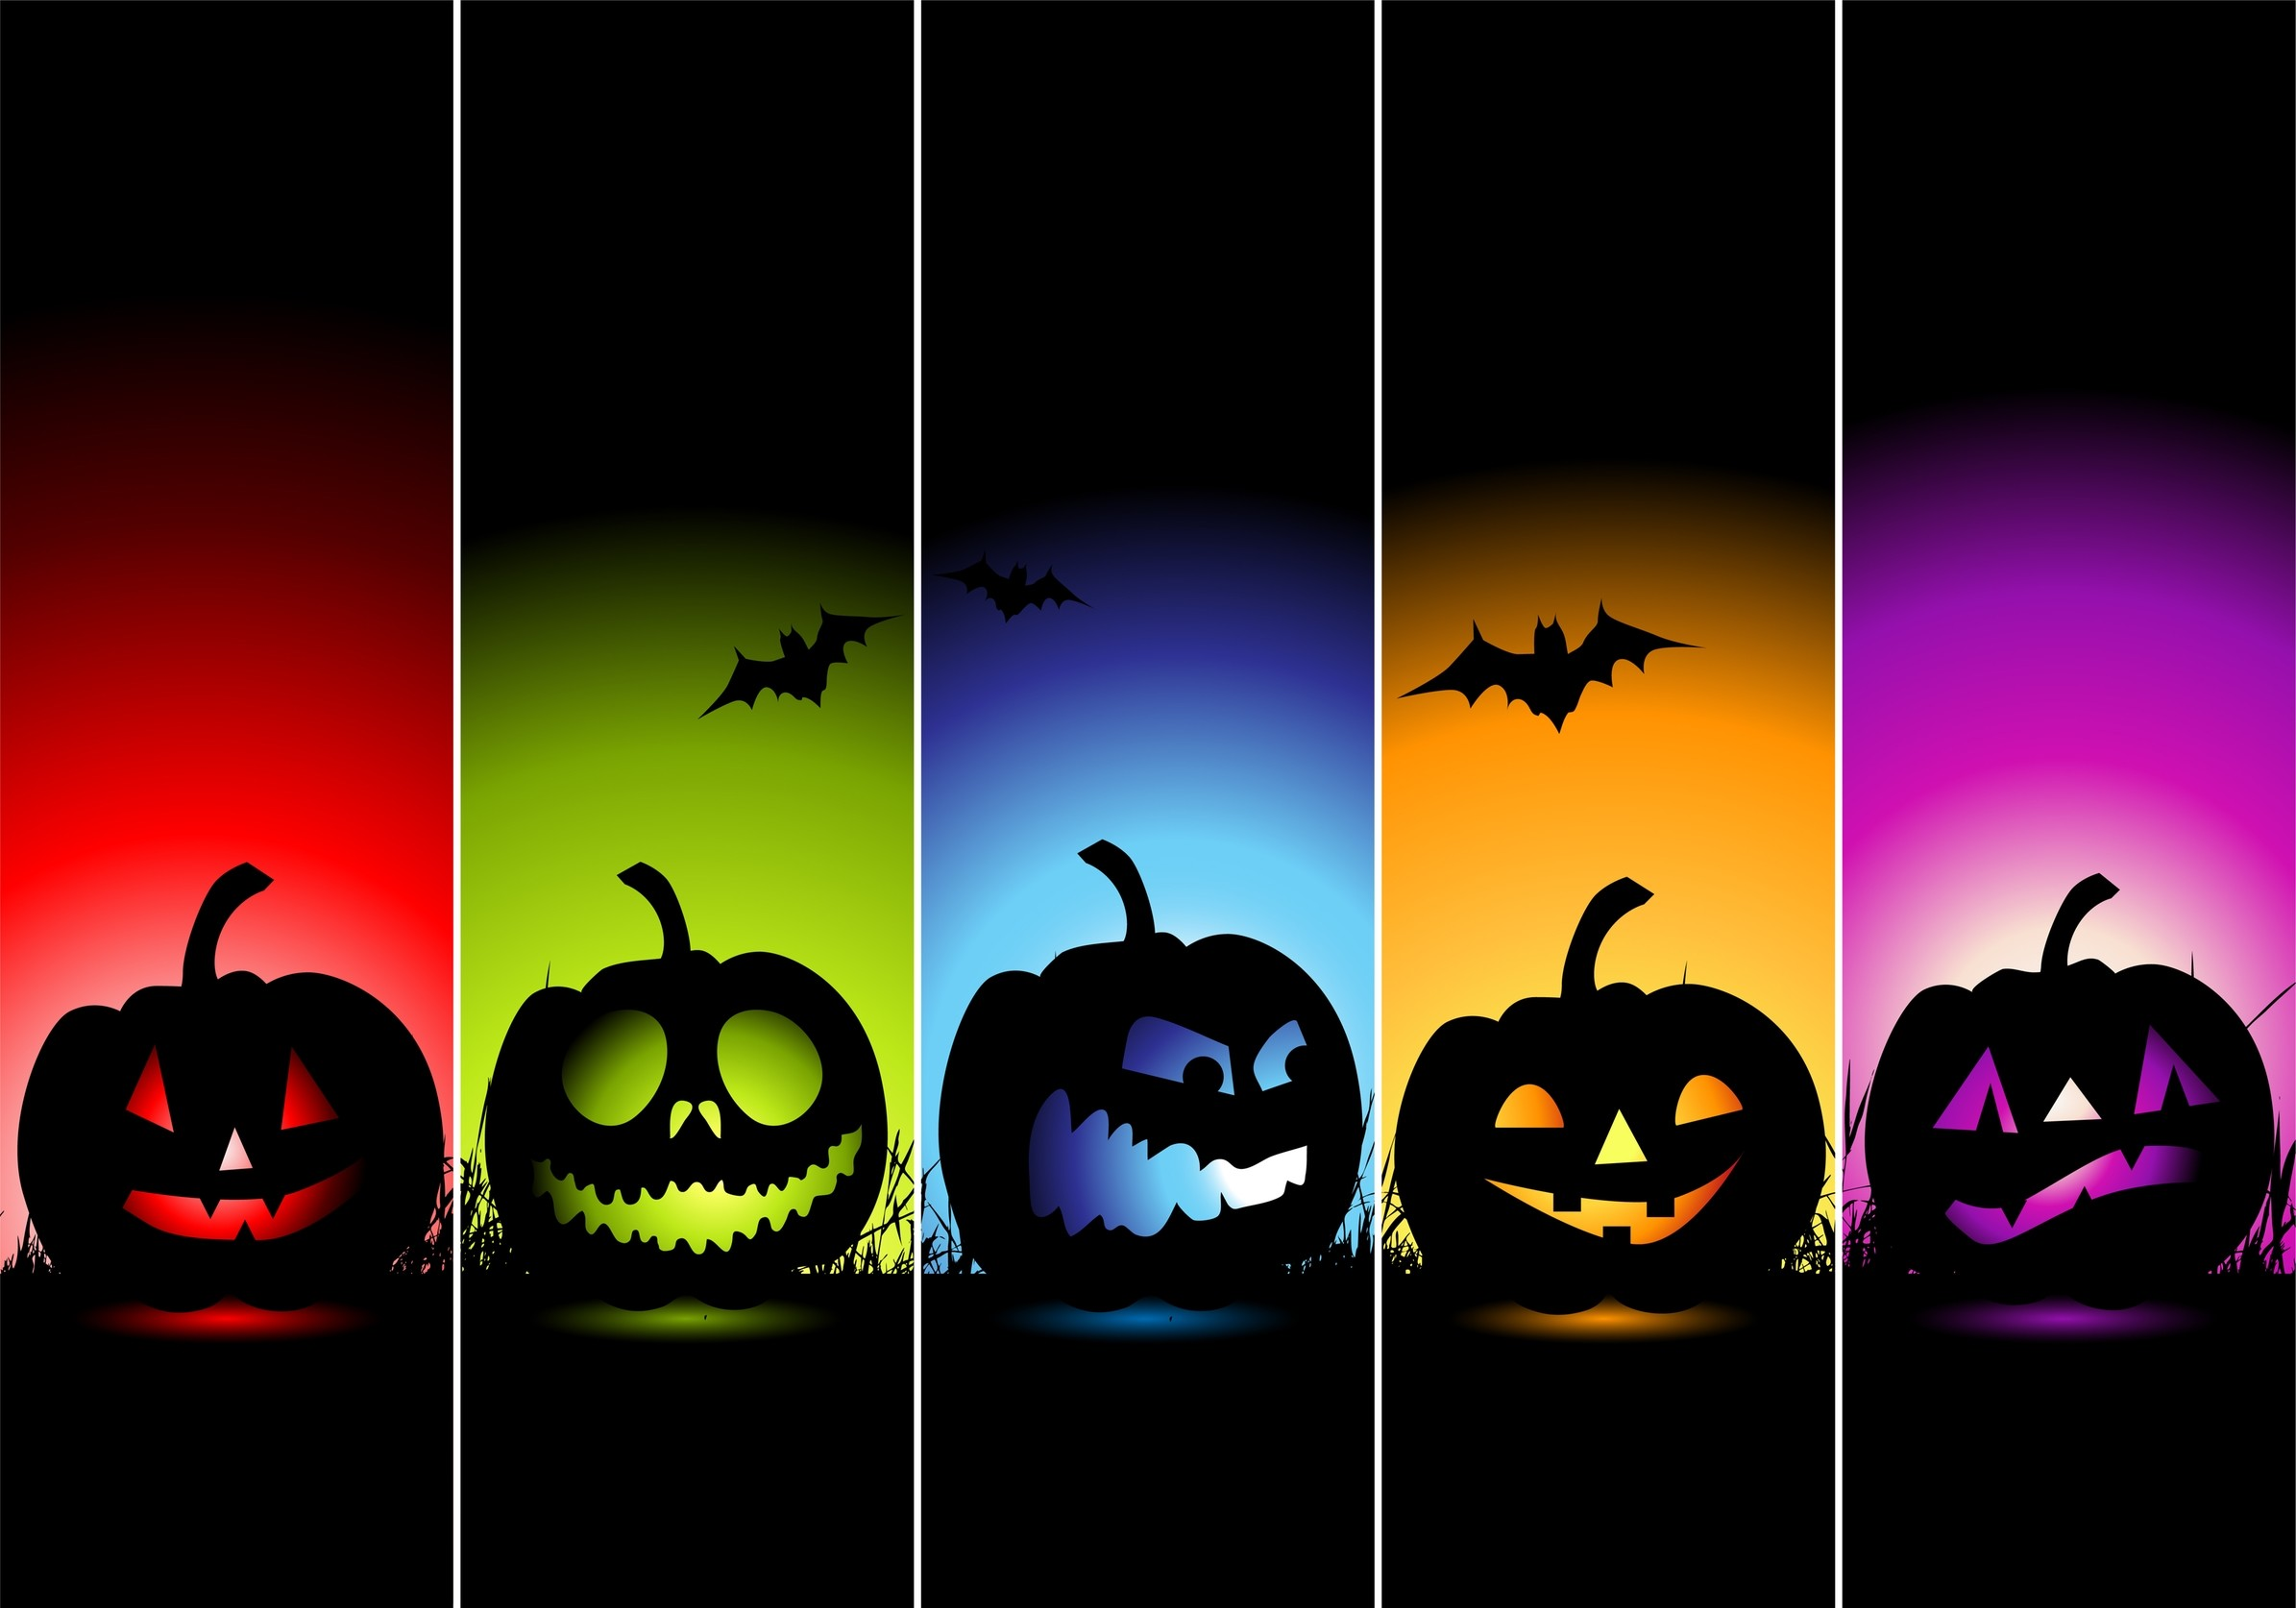 Cool Wallpaper Marvel Halloween - 1139380-download-free-cute-superhero-wallpaper-2390x1674-for-1080p  Collection_578365.jpg